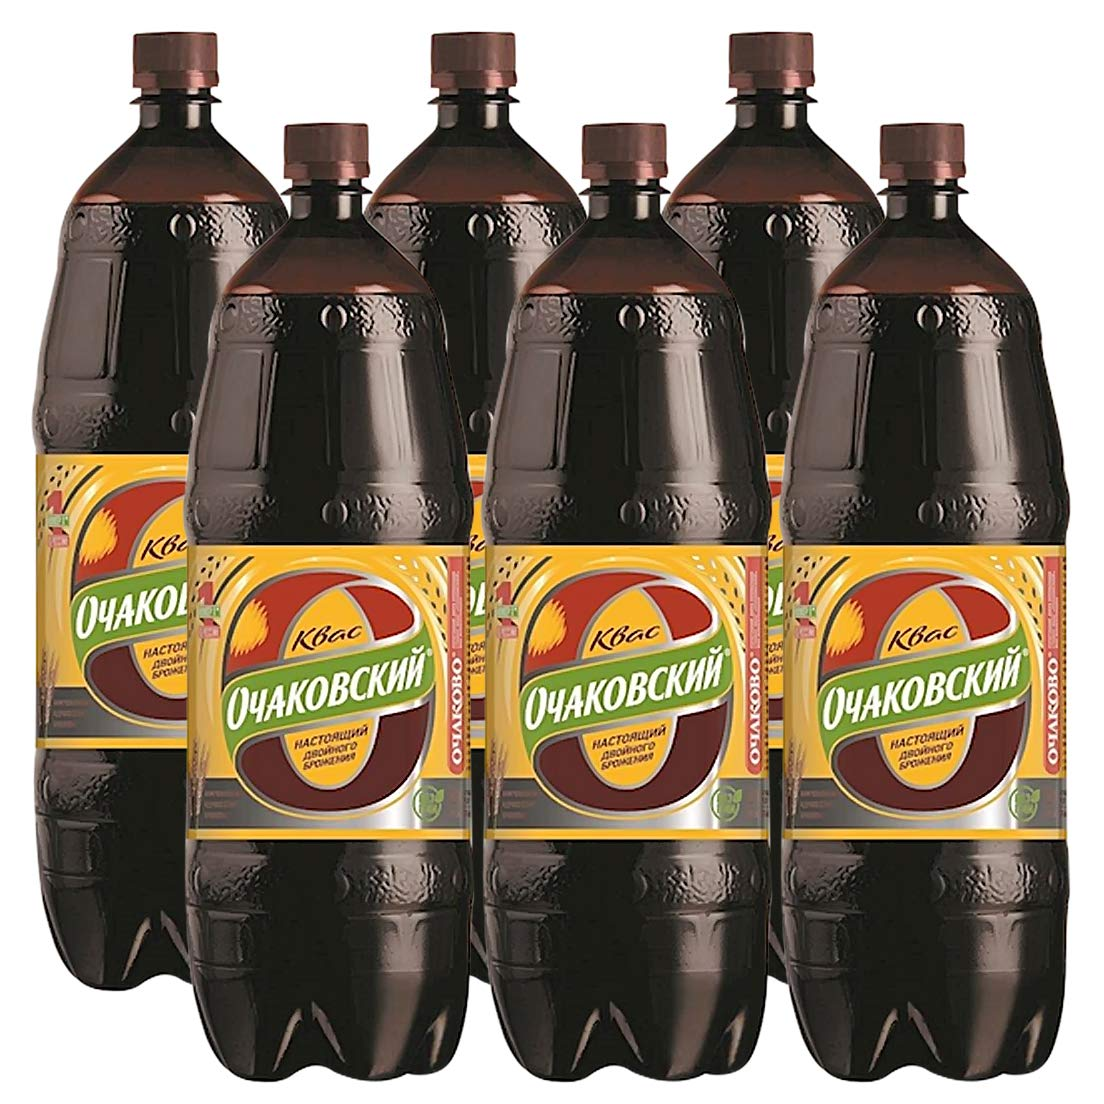 Classic Russian Ochakovskiy Food Drinks Kvass Soda Imported Fermented Probiotic Drink - Made With Rye Bread (6 Pack)